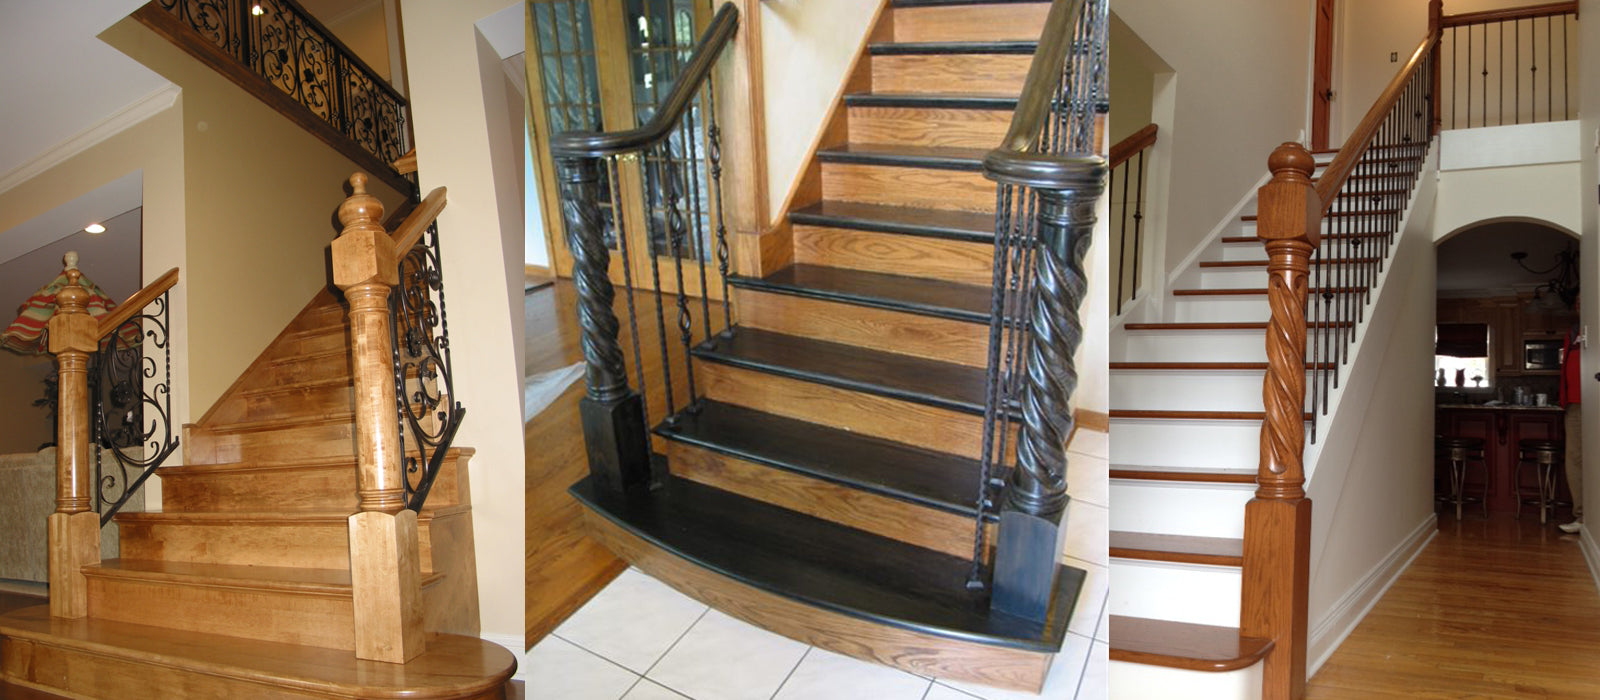 Custom Trophy Style Newels with Wrought Iron Metal Balustrades